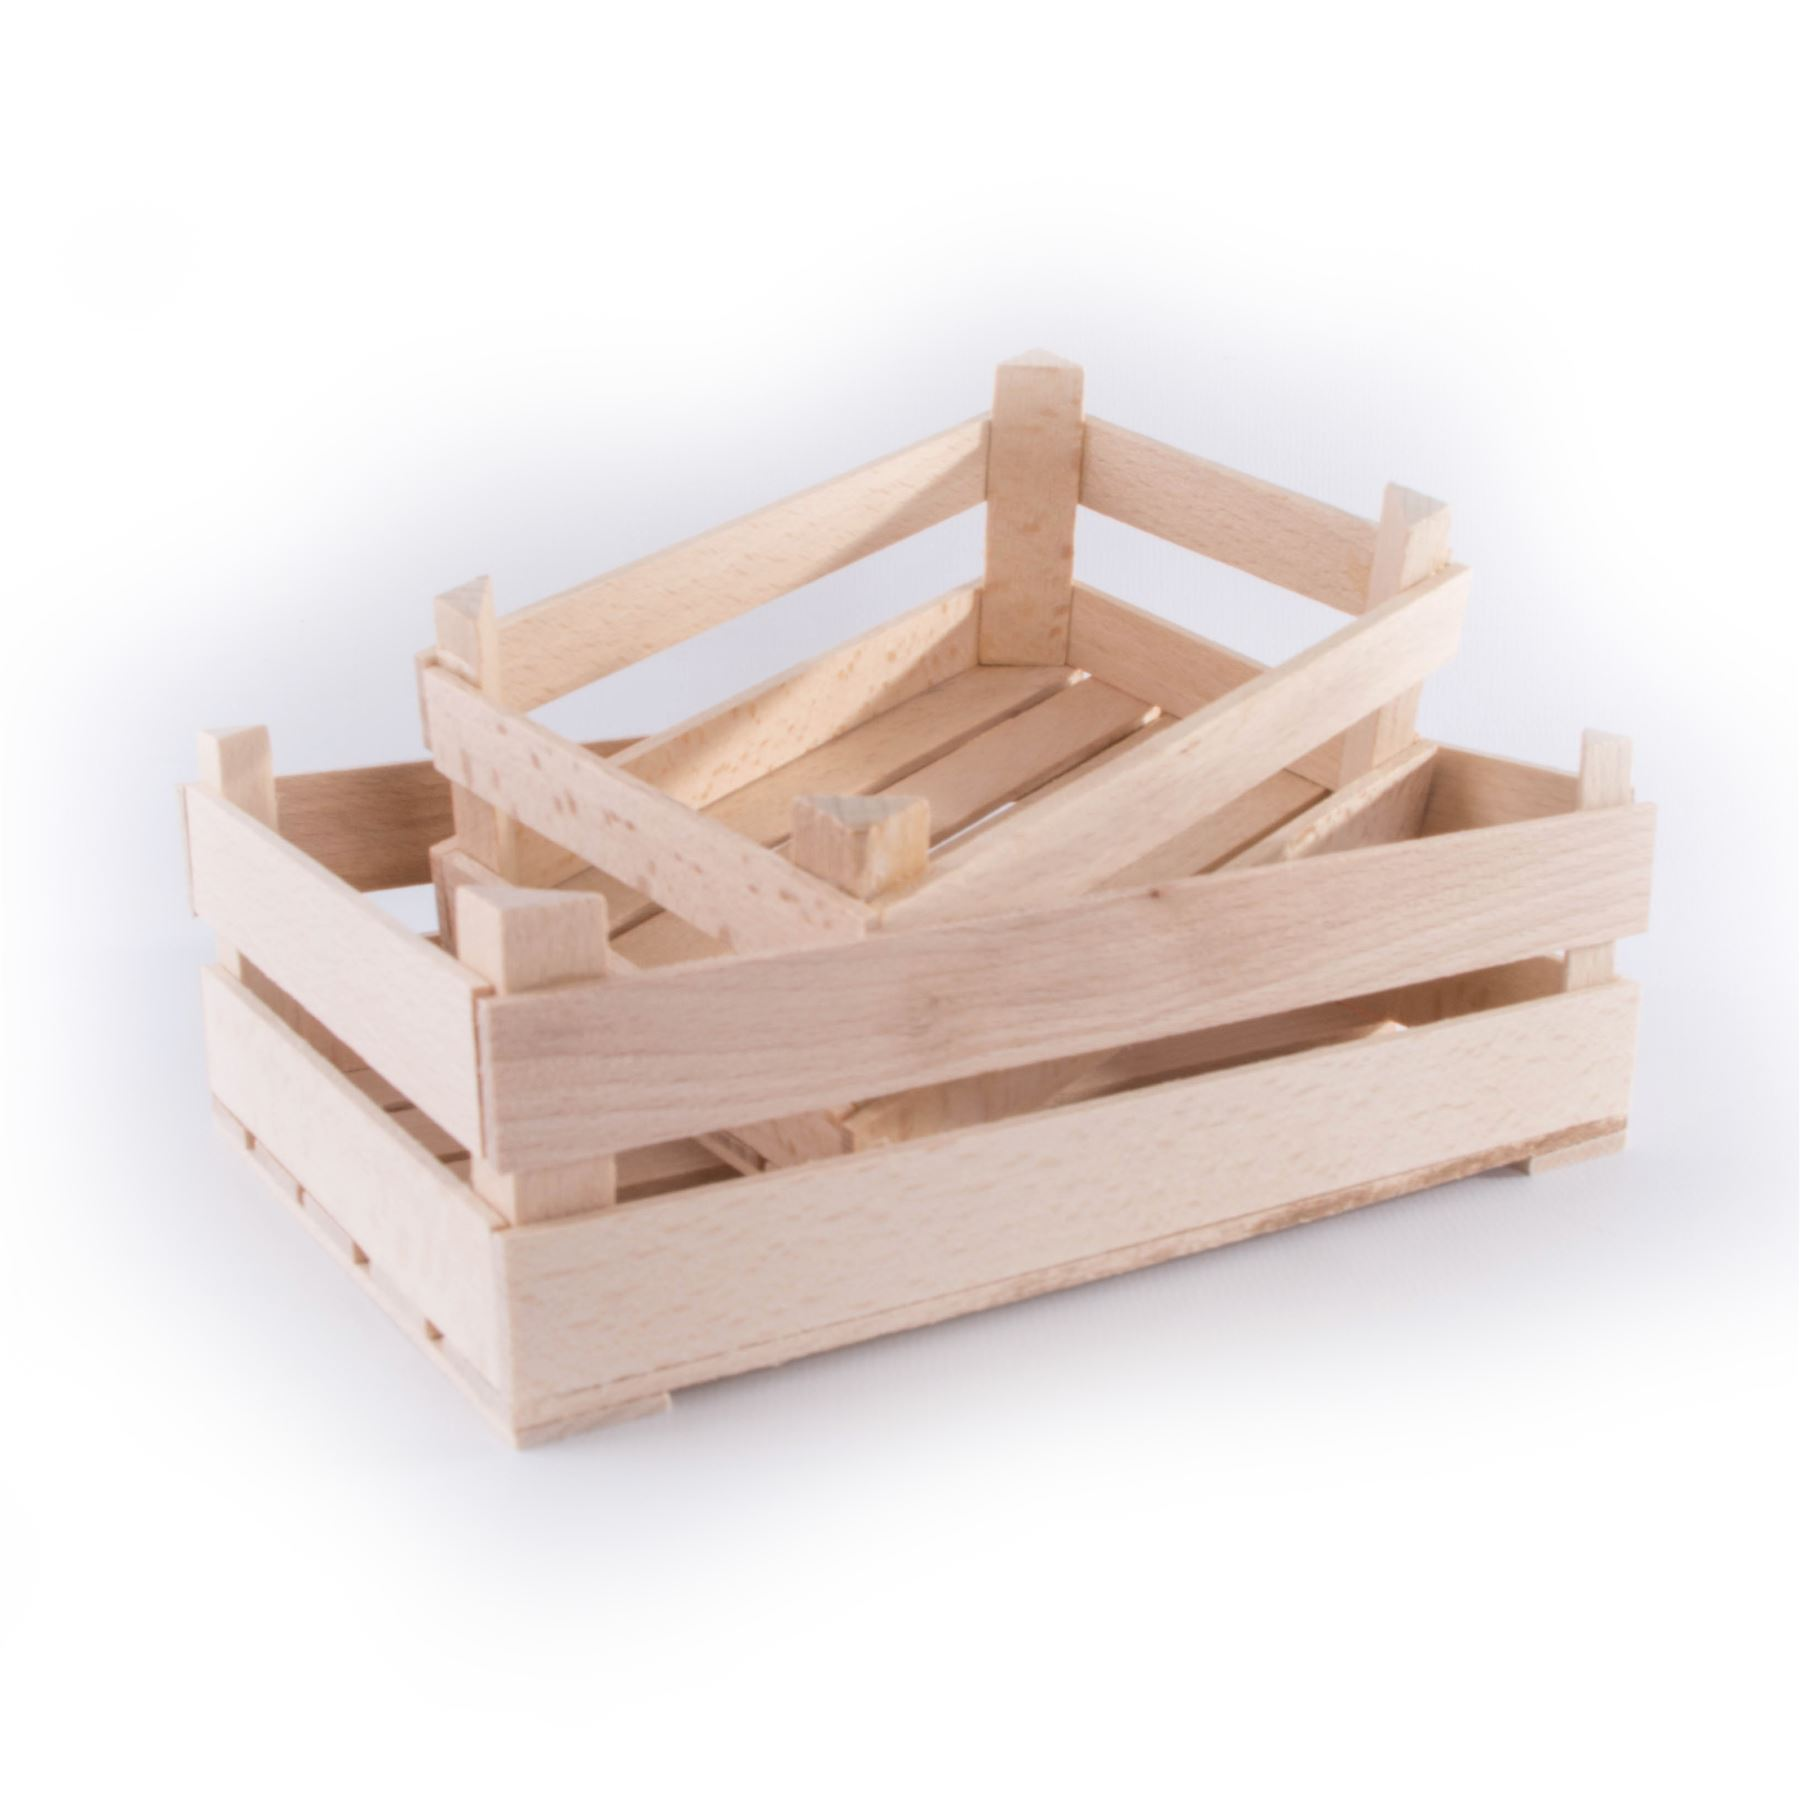 Details About Wooden Decorative Mini Little Crates In 2 Sizes Cute Display Boxes For Craft